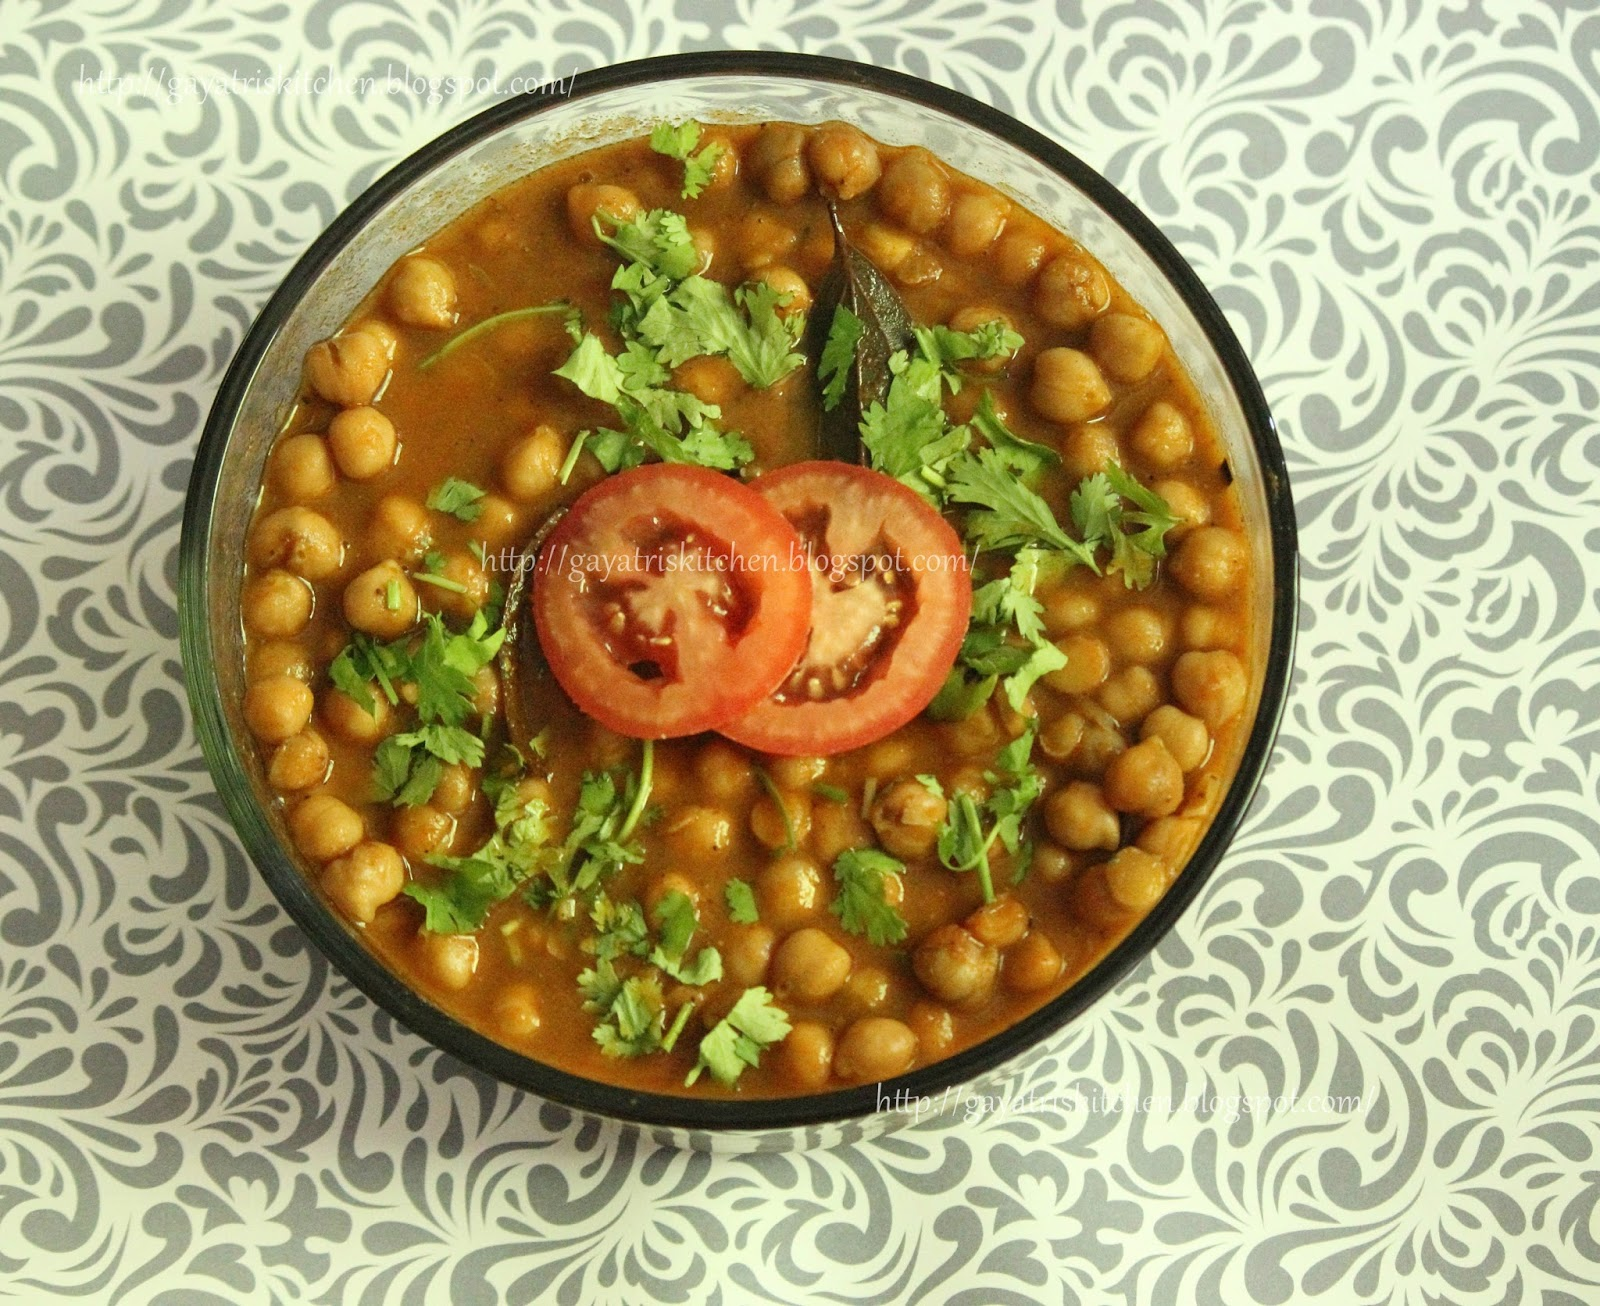 Gayatris kitchen chana masala without onion and garlic chhole this version i have prepared considerign travelroad trip having kids and aged people for road tripst adding onions and garlic makes this gravy last forumfinder Images